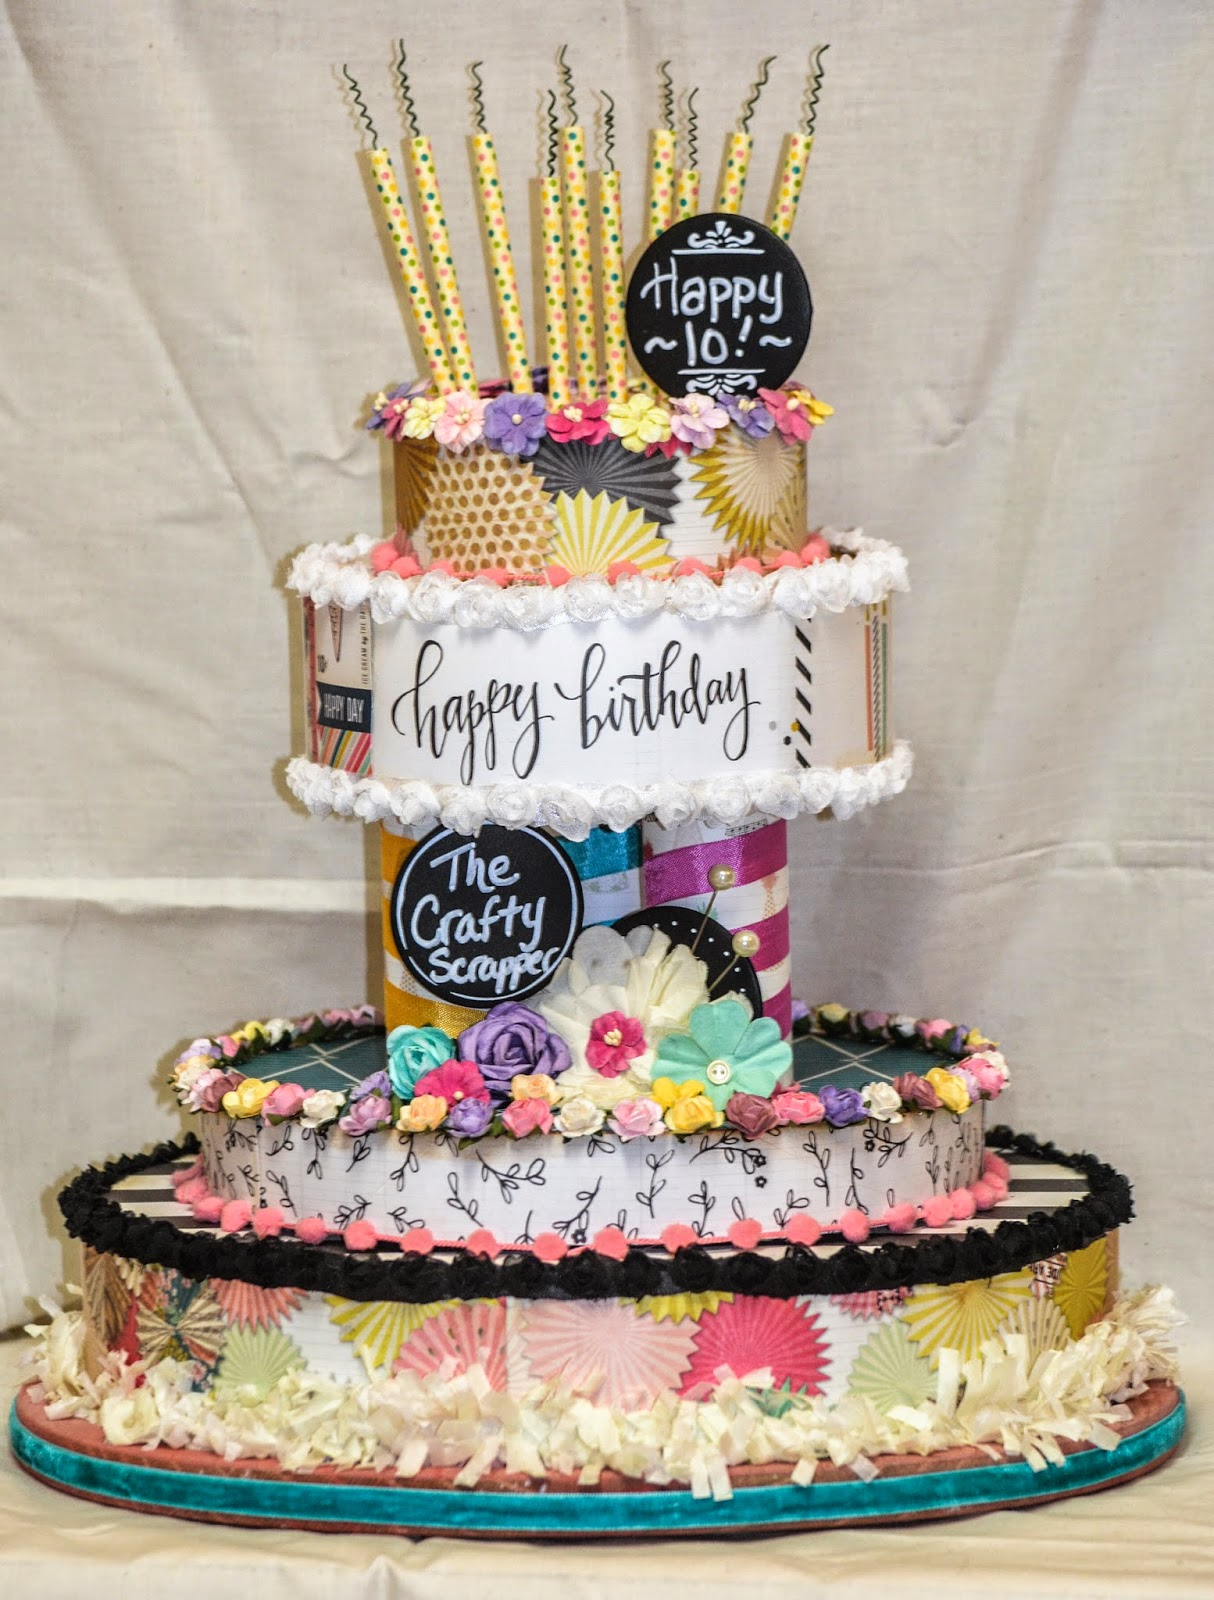 A Birthday Cake to Remember The Crafty Scrapper